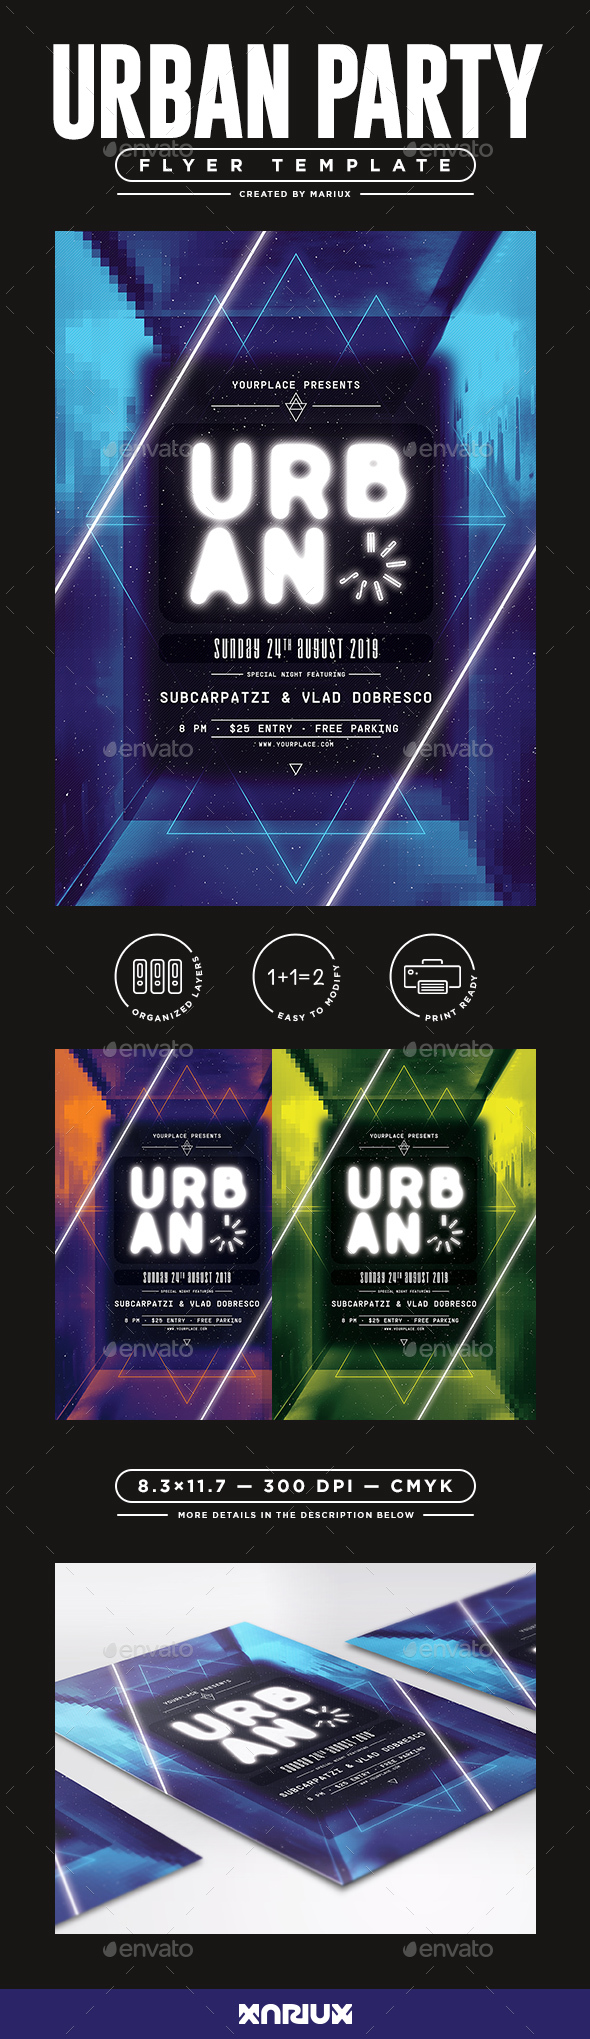 Urban Madness Flyer/Poster - Clubs & Parties Events